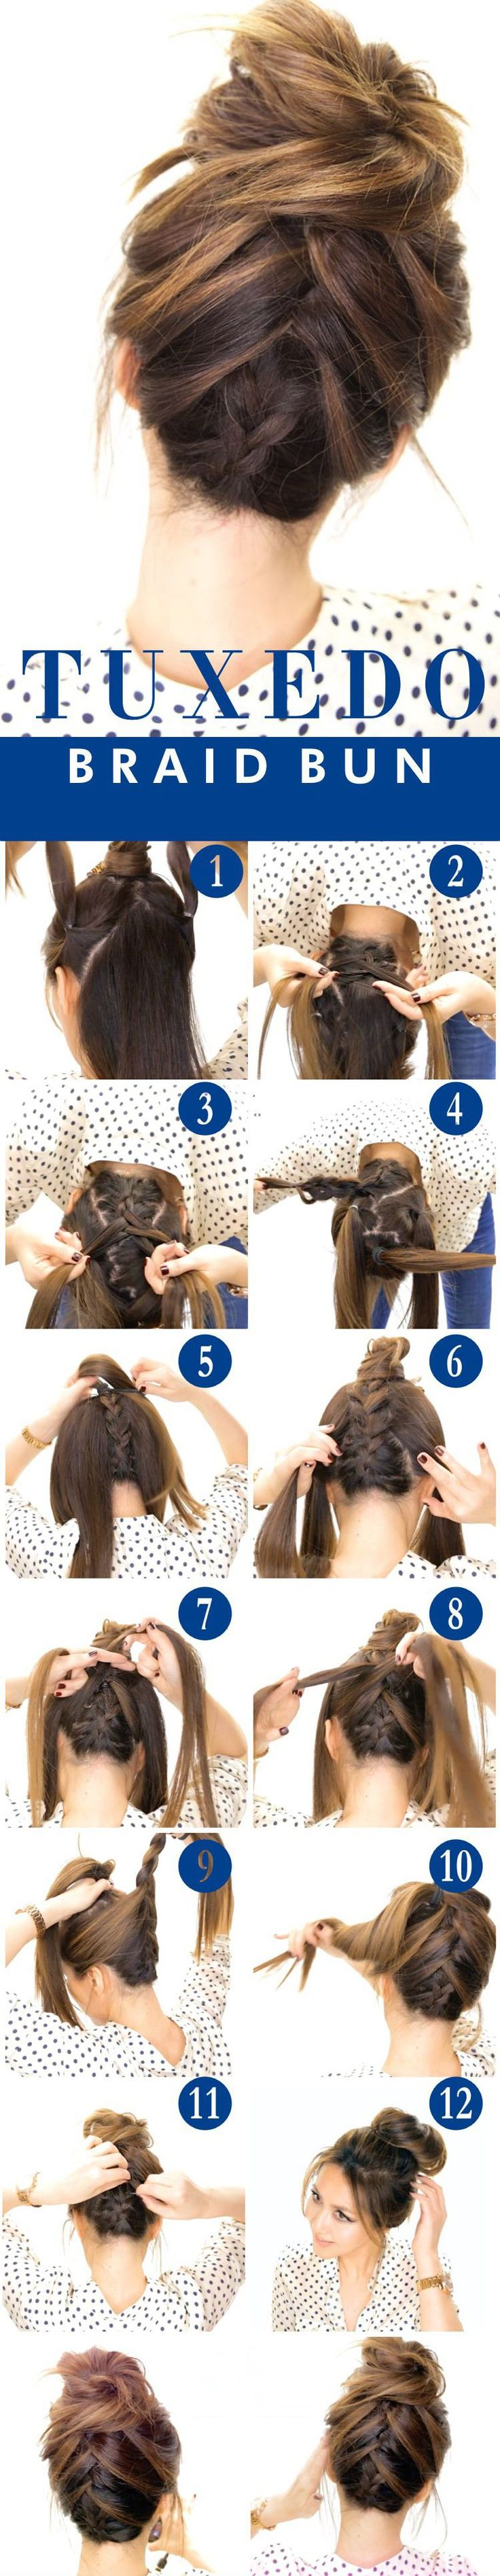 433 best Braided Buns images on Pinterest